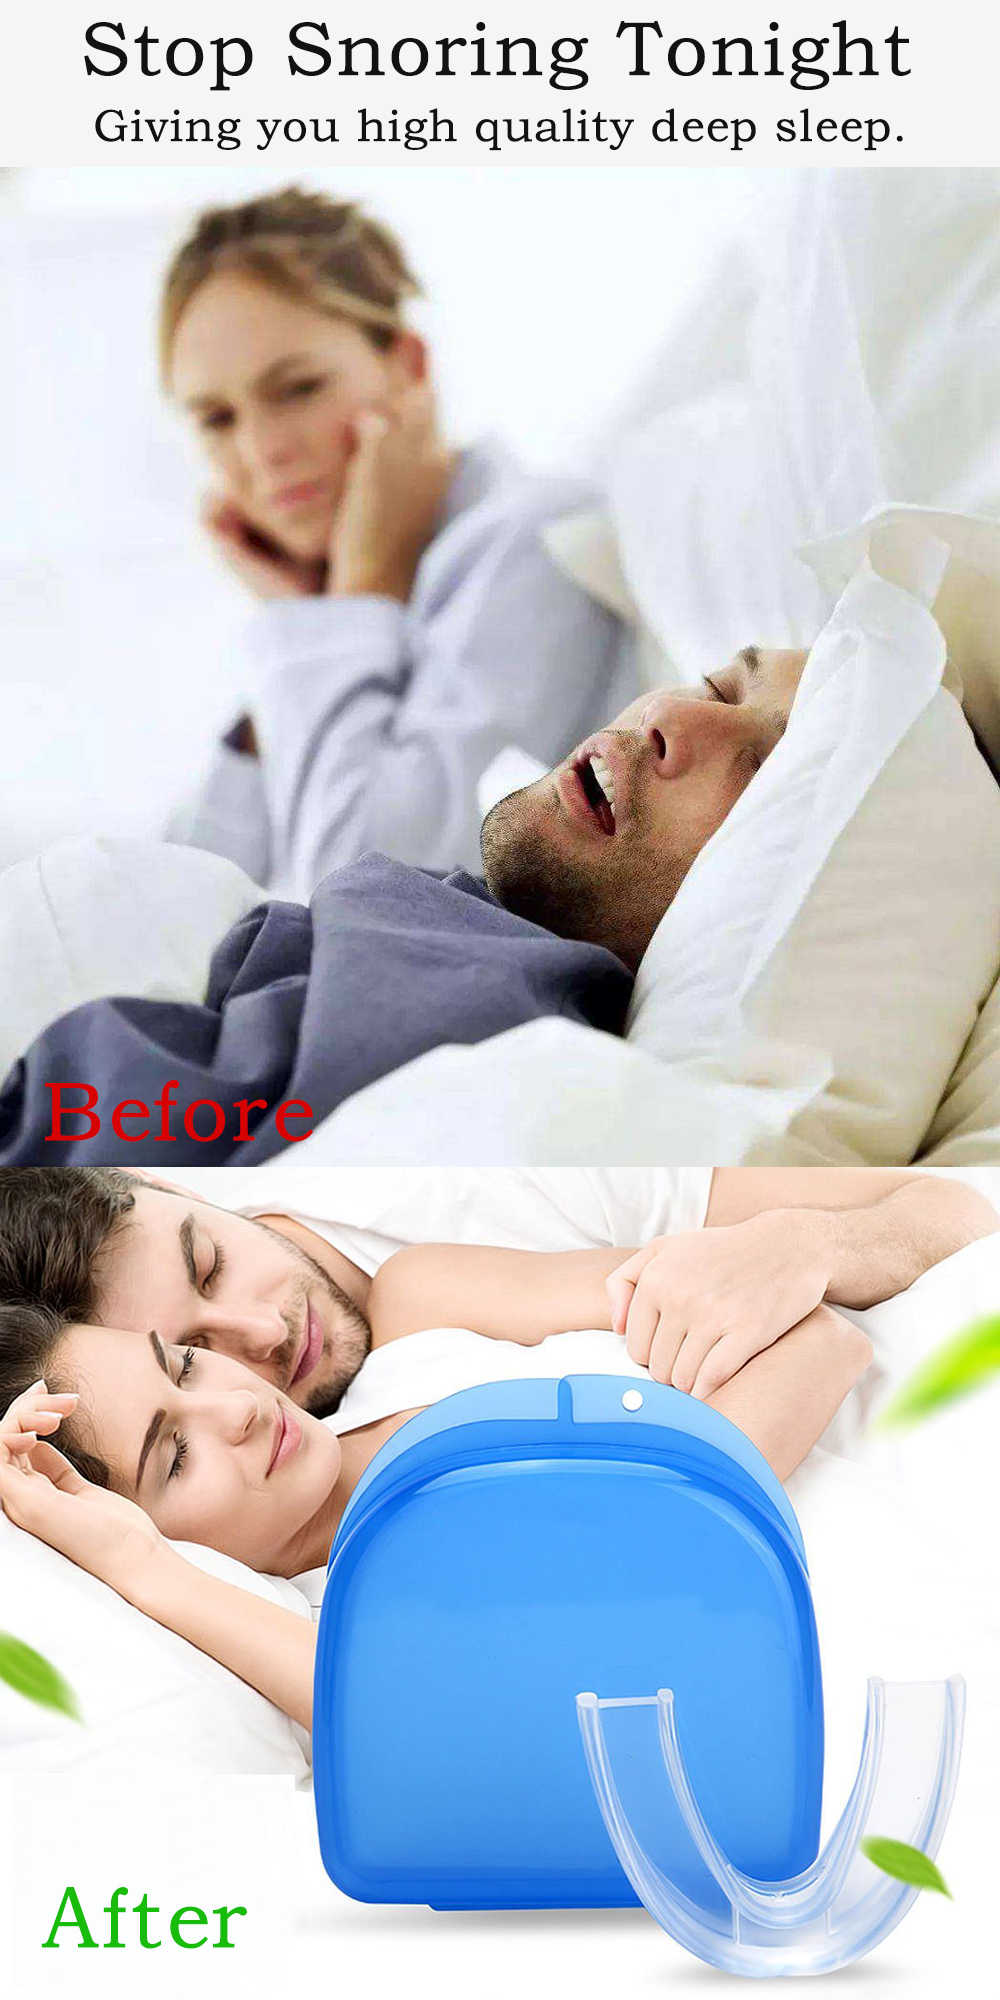 Stop Snoring Aids Sld 118 Anti Snoring Devices Snoring Aids Snore Stopper Mini Air Purifier Nose Vent Nasal Dilators Soft Food Grade Eva Slee